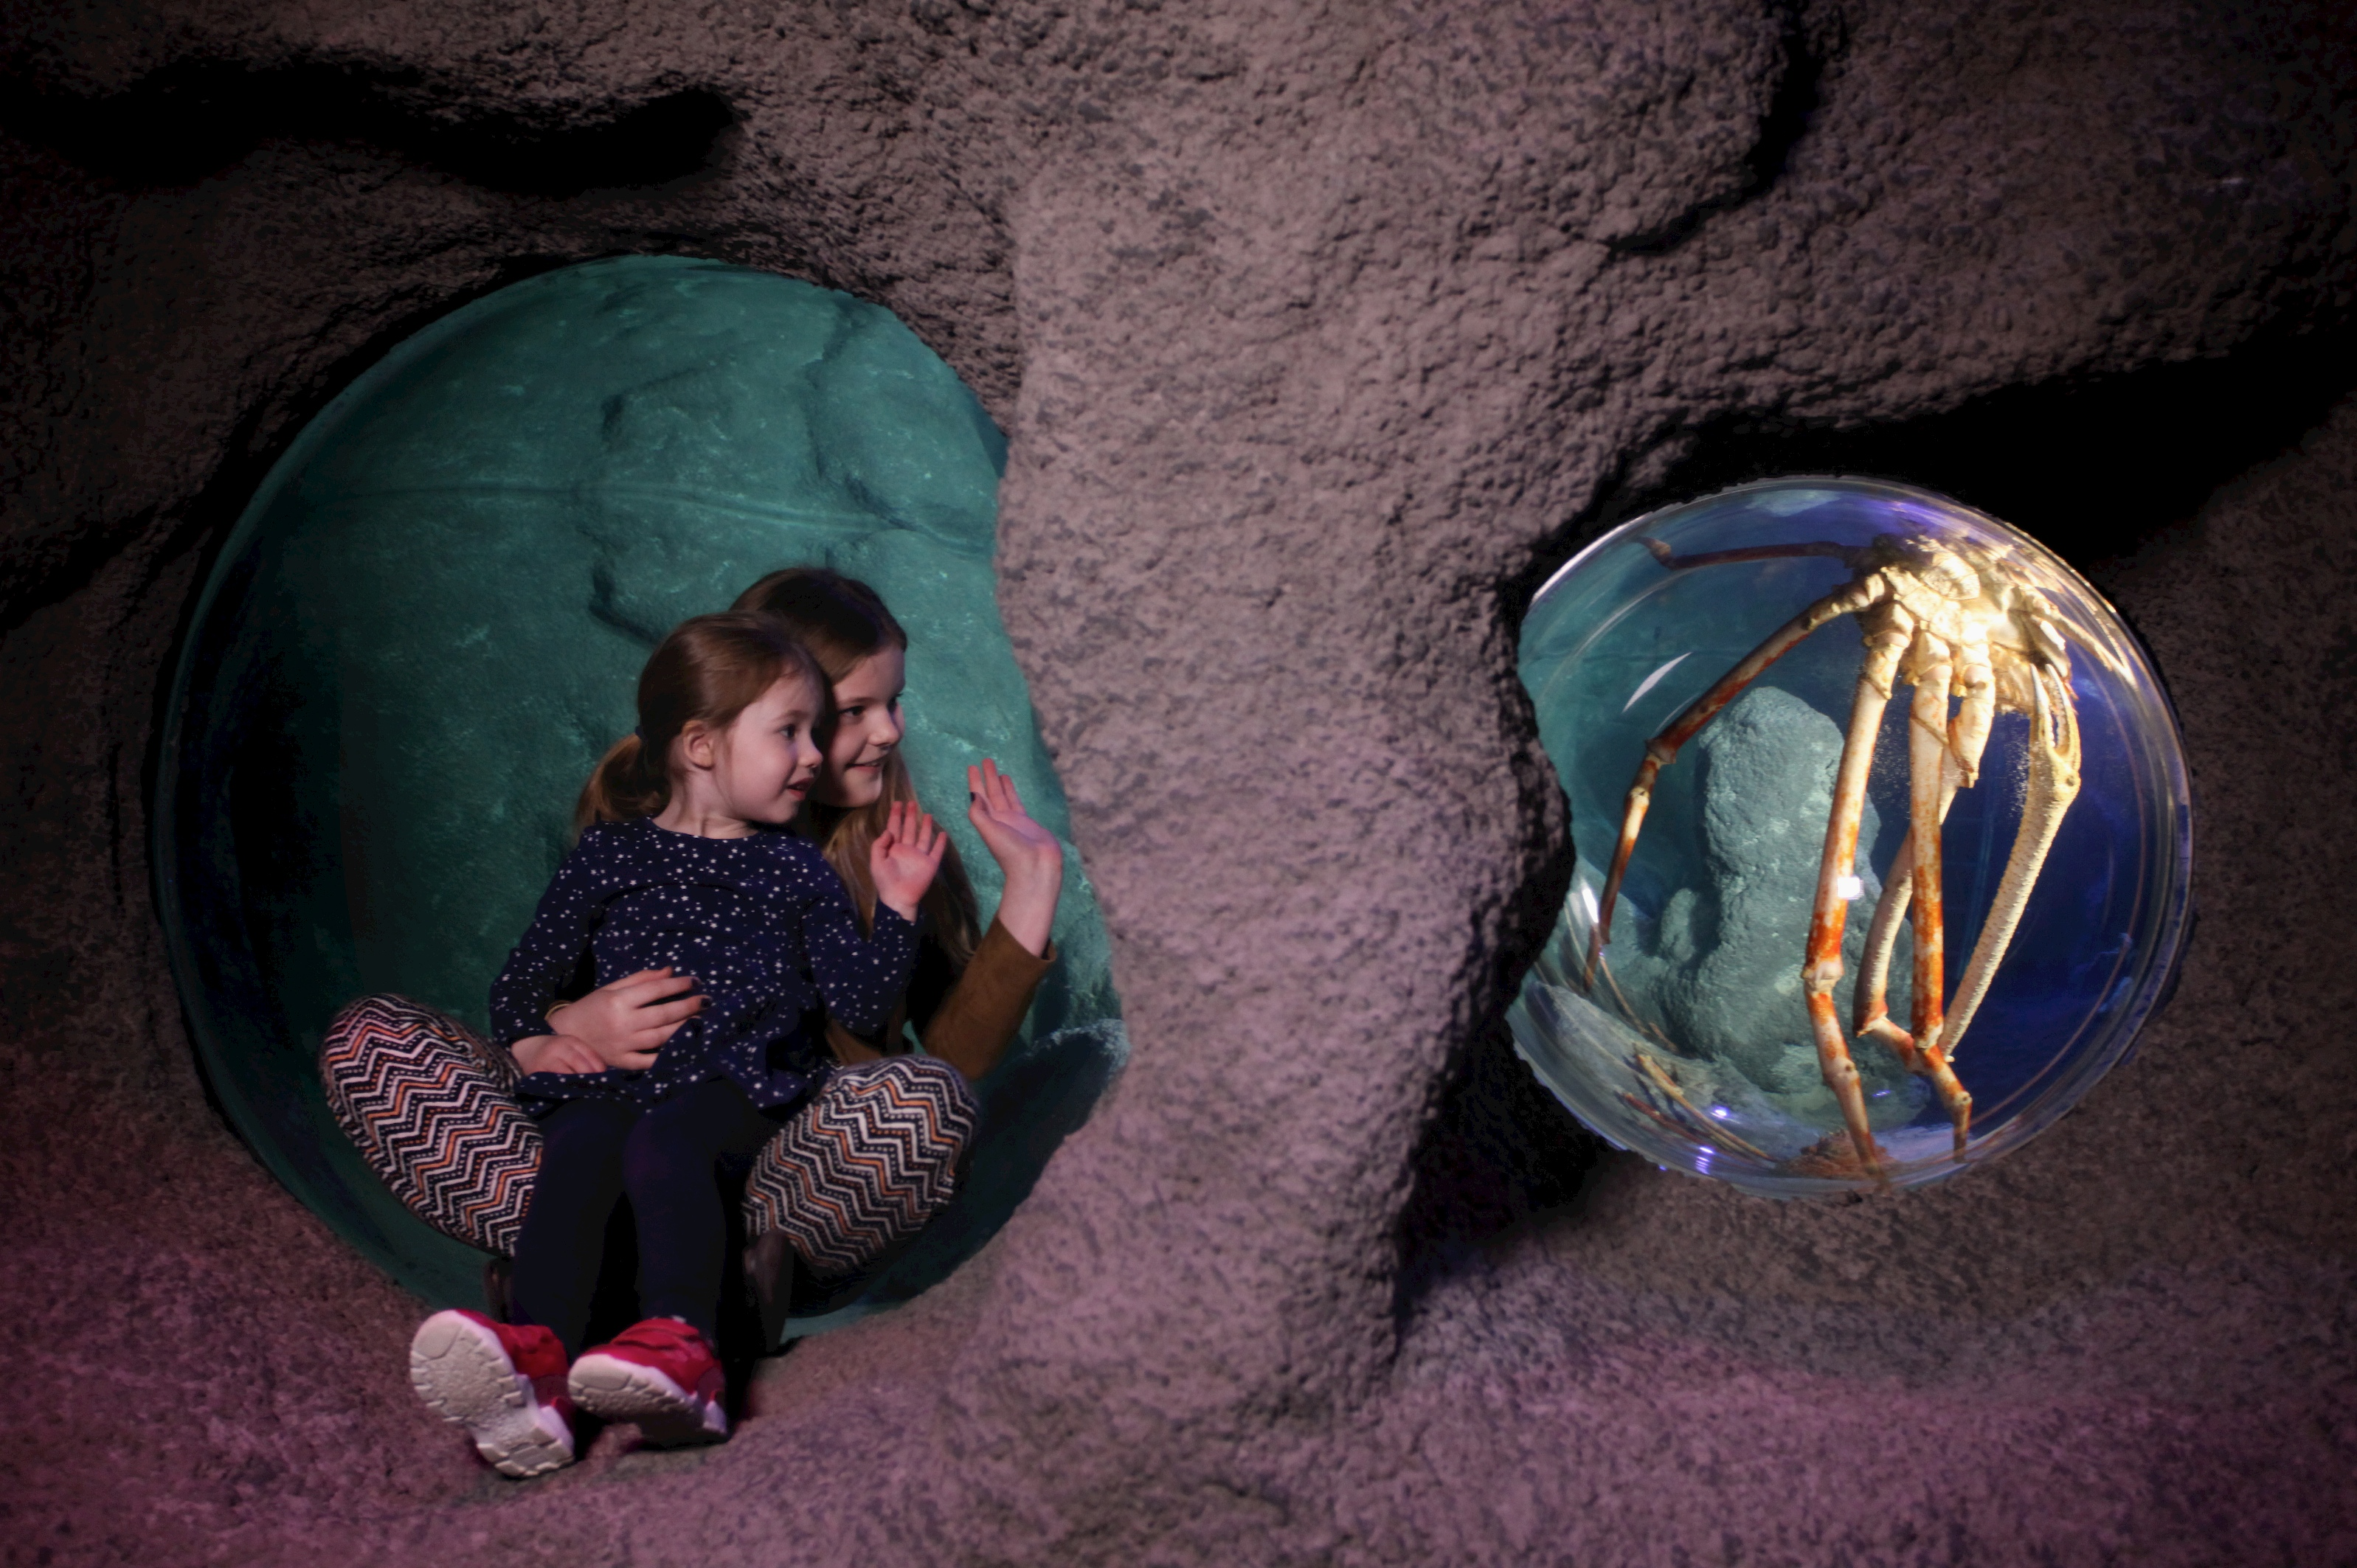 Children at the Giant Crab zone at SEA LIFE Manchester